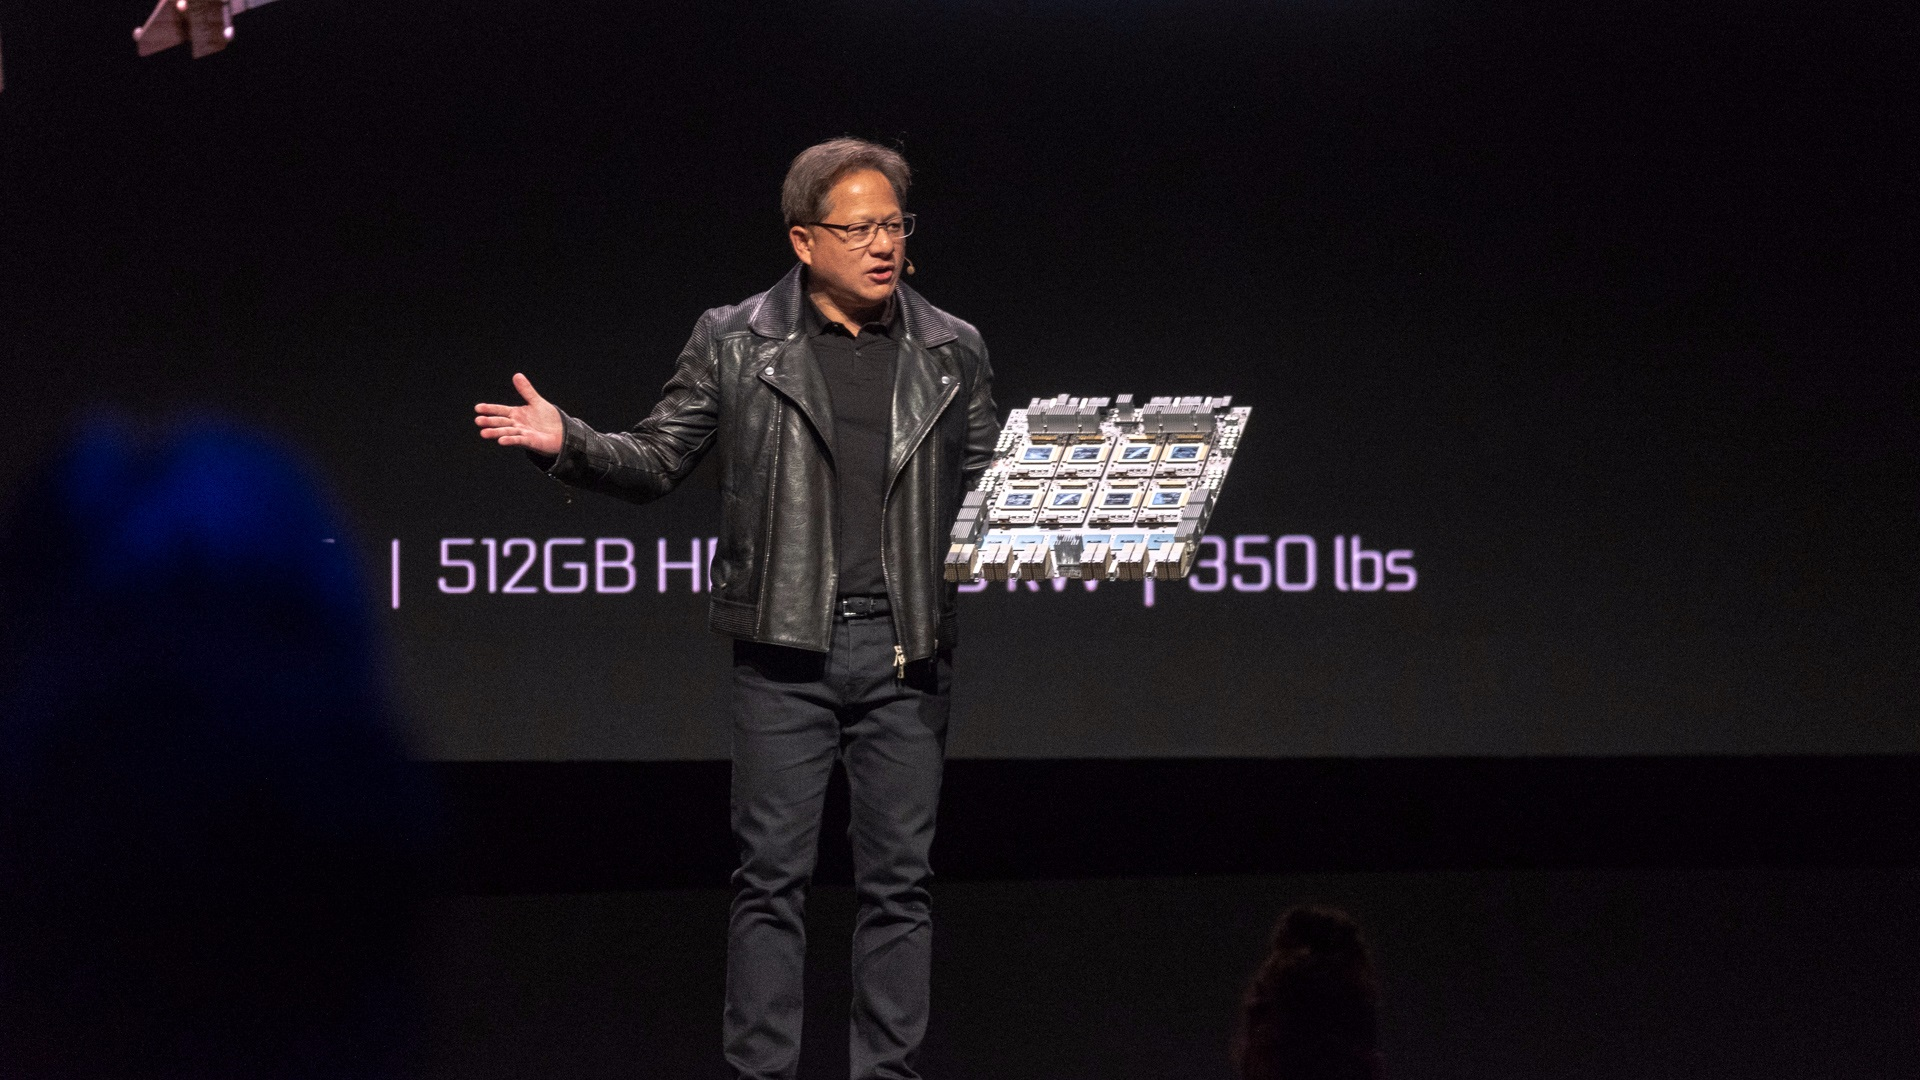 Nvidia GPUs built with Samsung's 7nm process could come in 2020